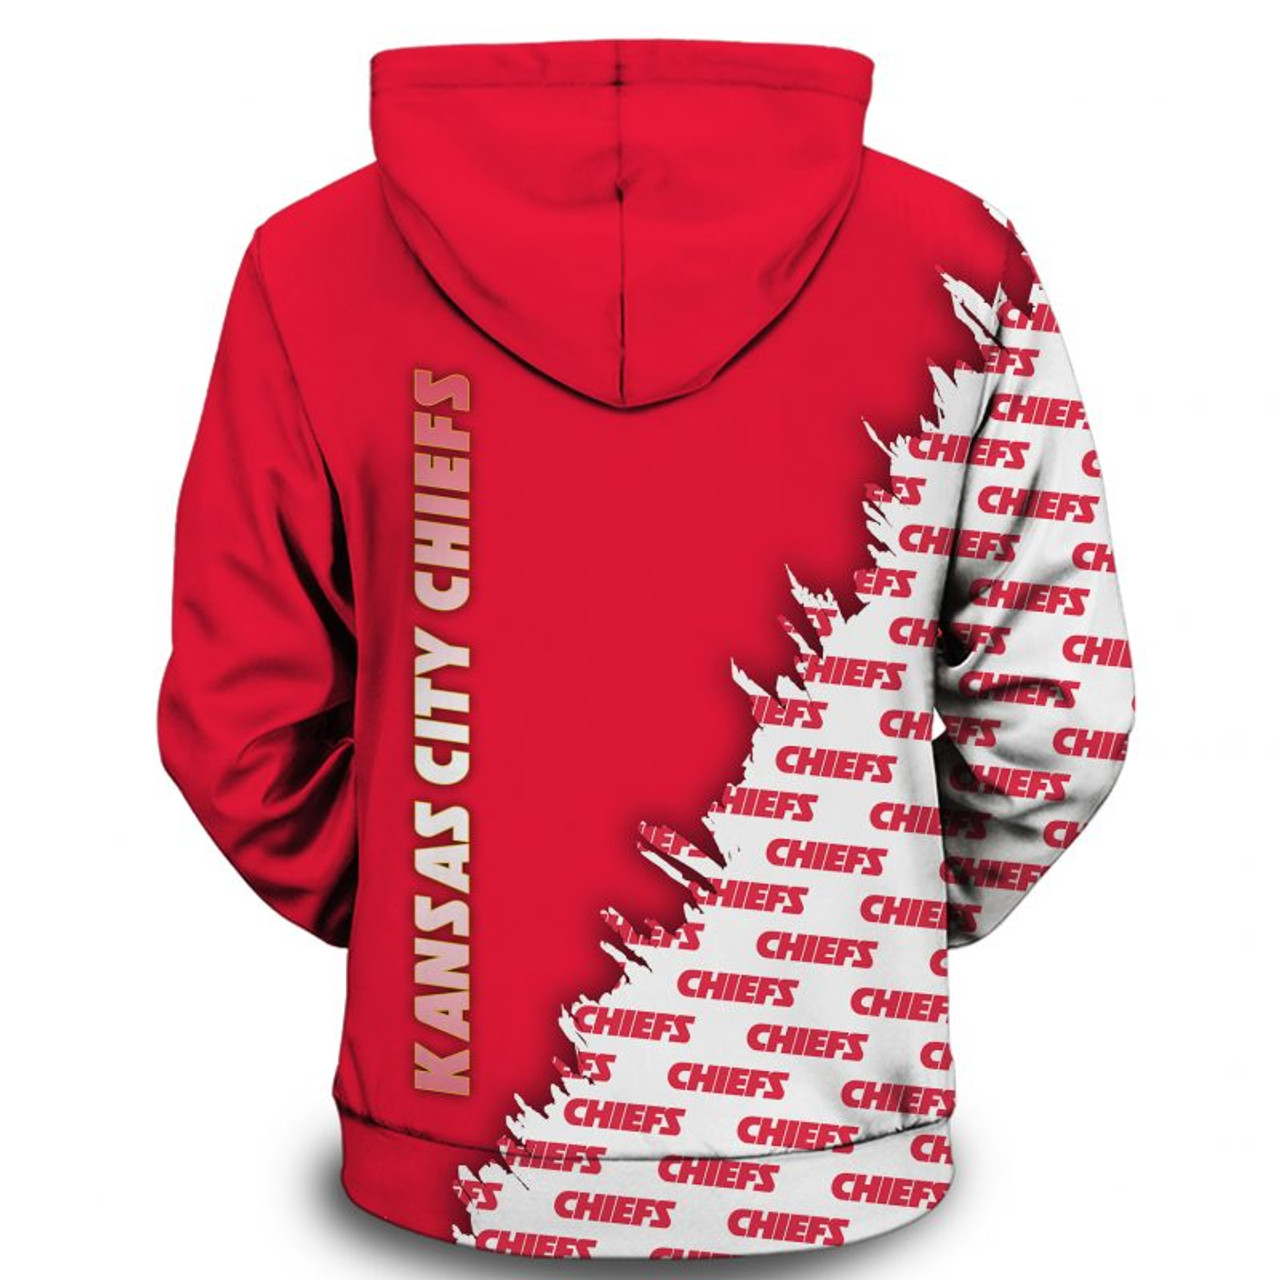 **(OFFICIAL-N.F.L.KANSAS-CITY-CHIEFS-TEAM-PULLOVER-HOODIES/CUSTOM-3D-CHIEFS-OFFICIAL-LOGOS & OFFICIAL-CLASSIC-CHIEFS-TEAM-COLORS/DETAILED-3D-GRAPHIC-PRINTED-DOUBLE-SIDED-DESIGN/WARM-PREMIUM-N.F.L.CHIEFS-TEAM-GAME-DAY-PULLOVER-HOODIES)**